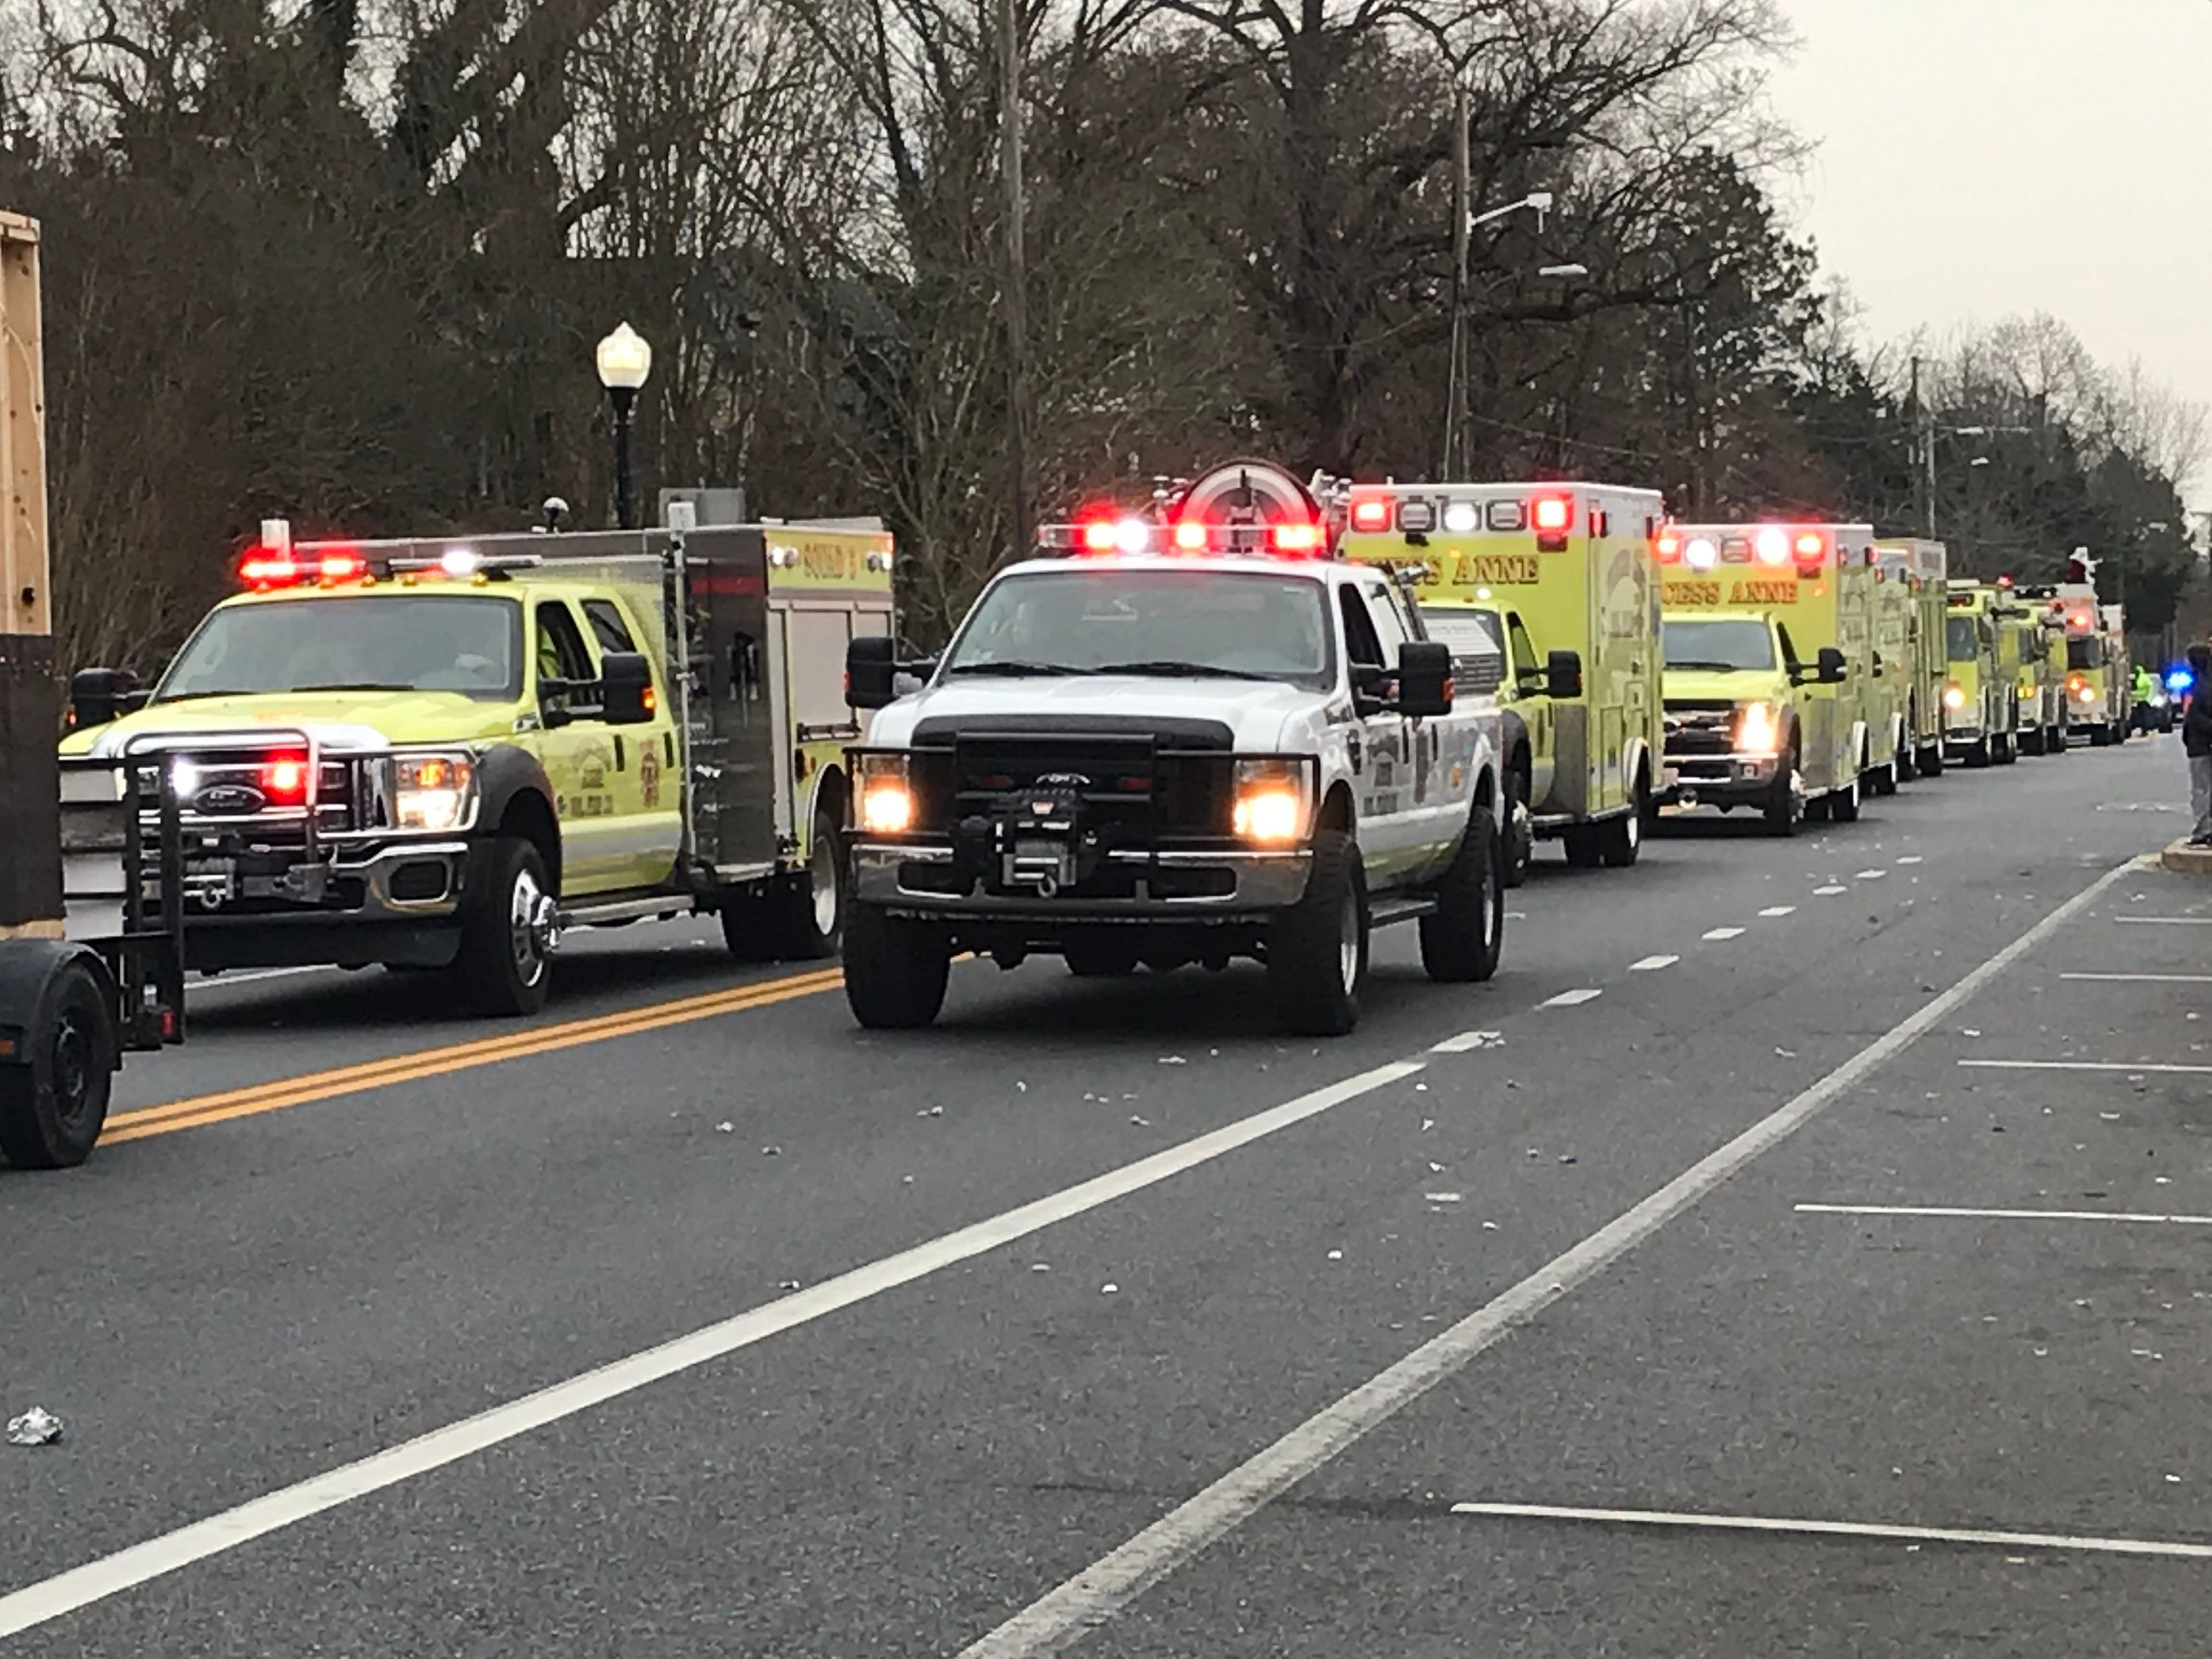 The parade ended with a line of firetrucks and rescue vehicles.